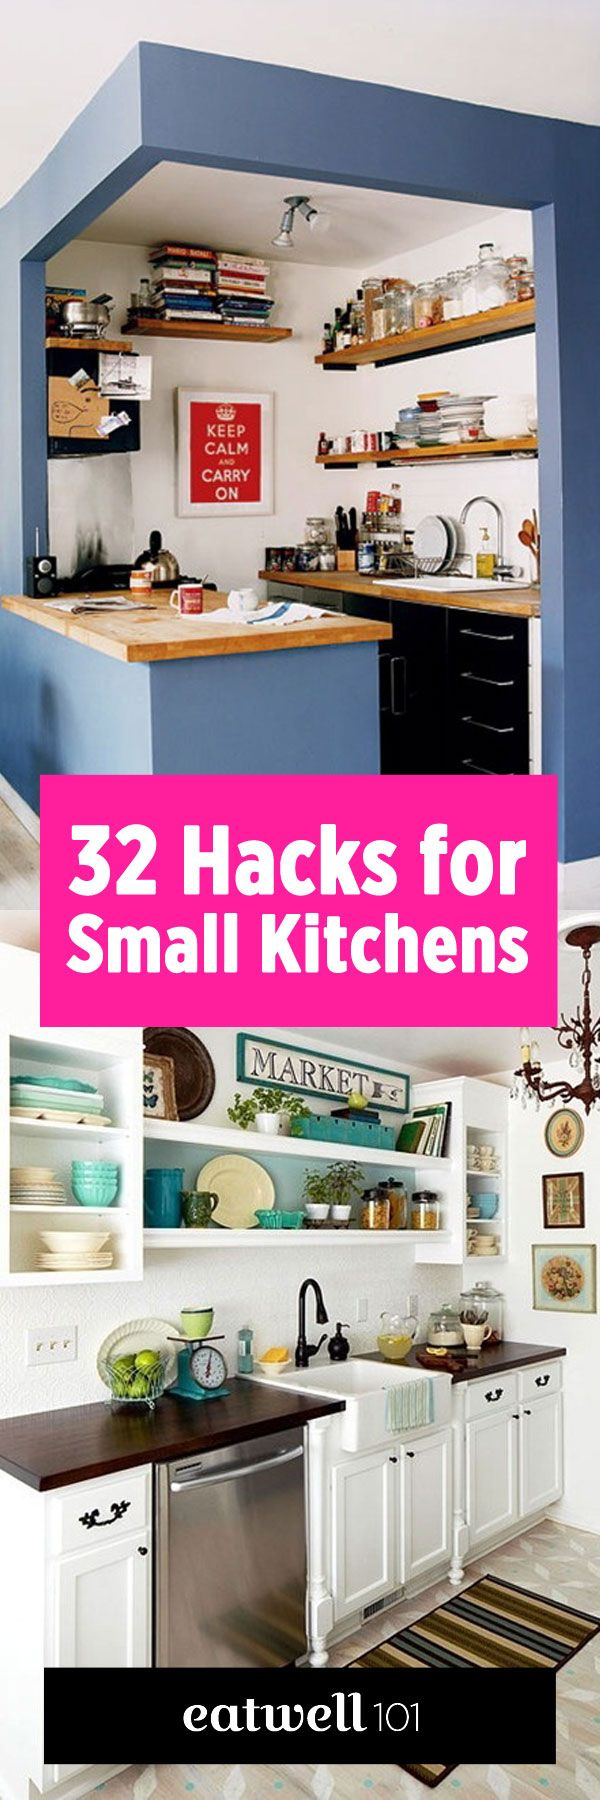 Kitchen make your kitchen dazzle with pertaining to kitchen design - 32 Brilliant Hacks To Make A Small Kitchen Look Bigger